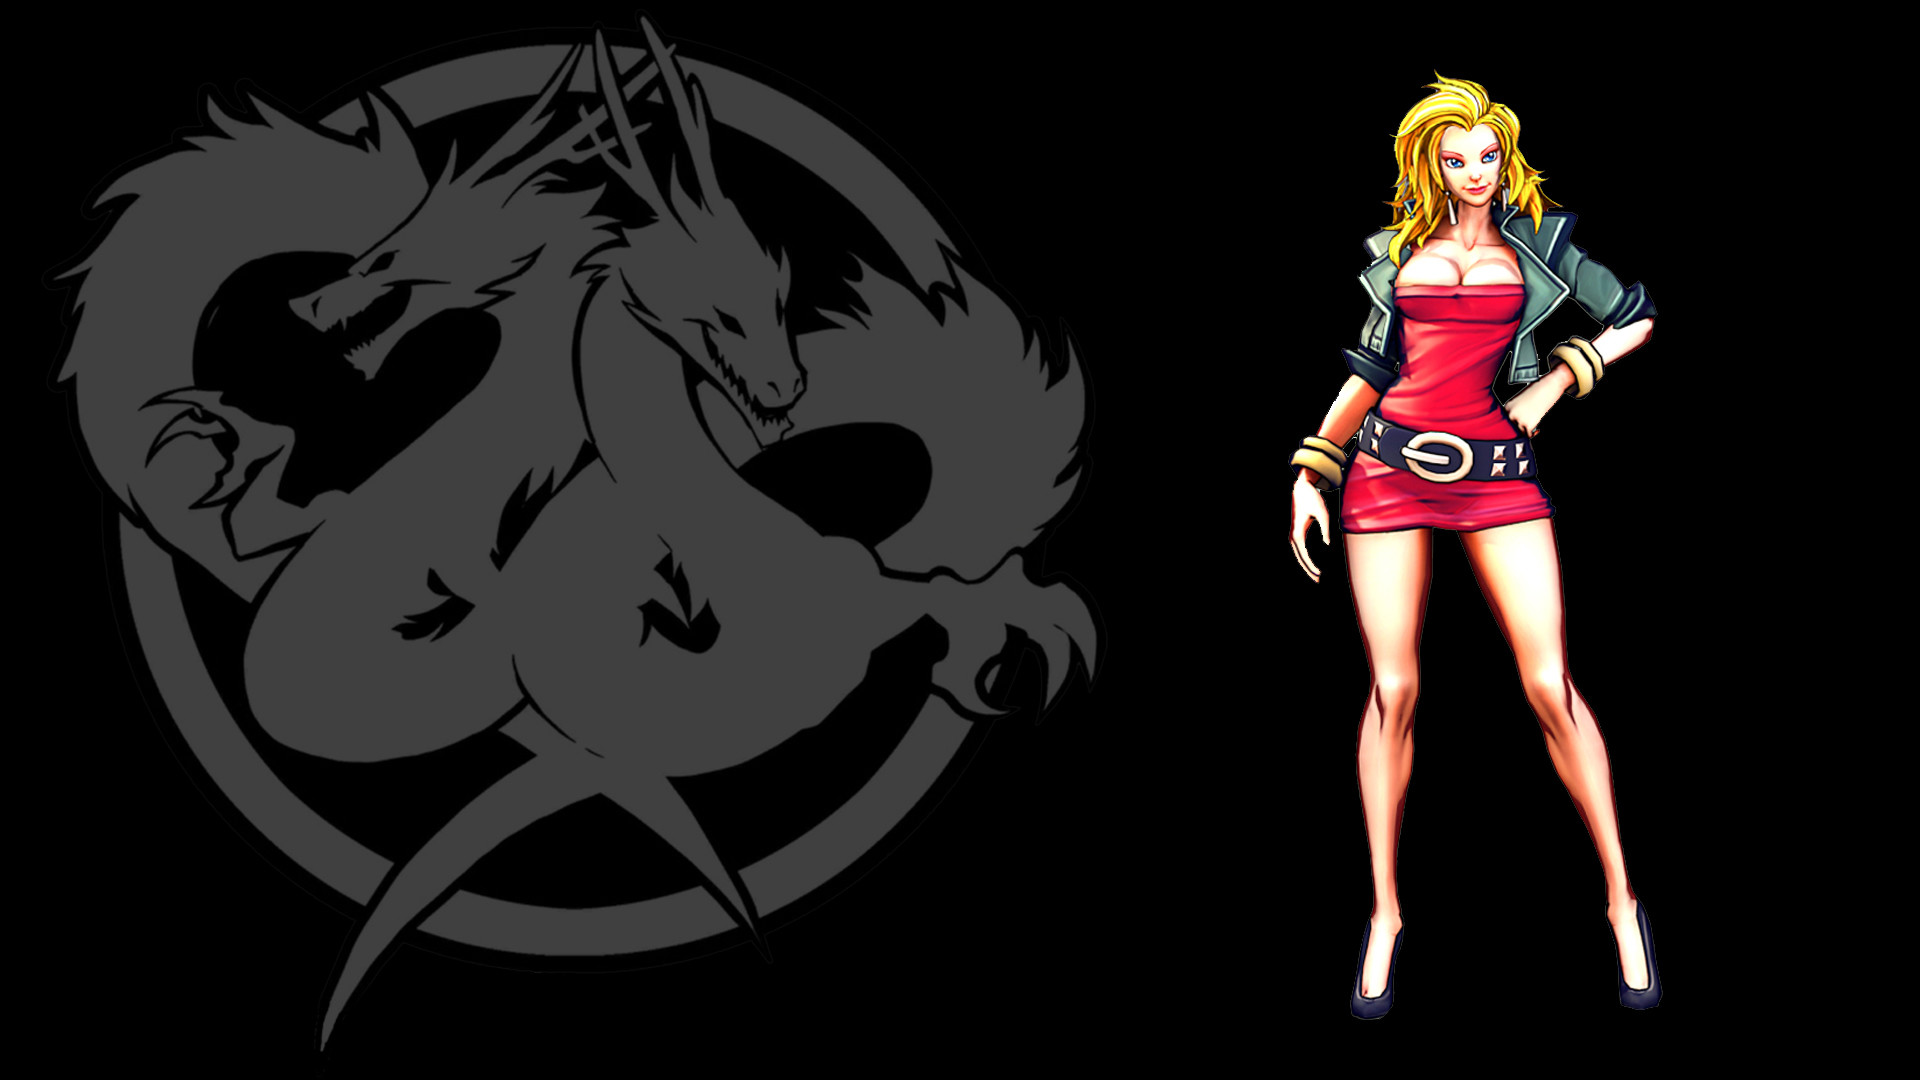 Res: 1920x1080, wallpaper #3 Wallpaper from Double Dragon: Neon